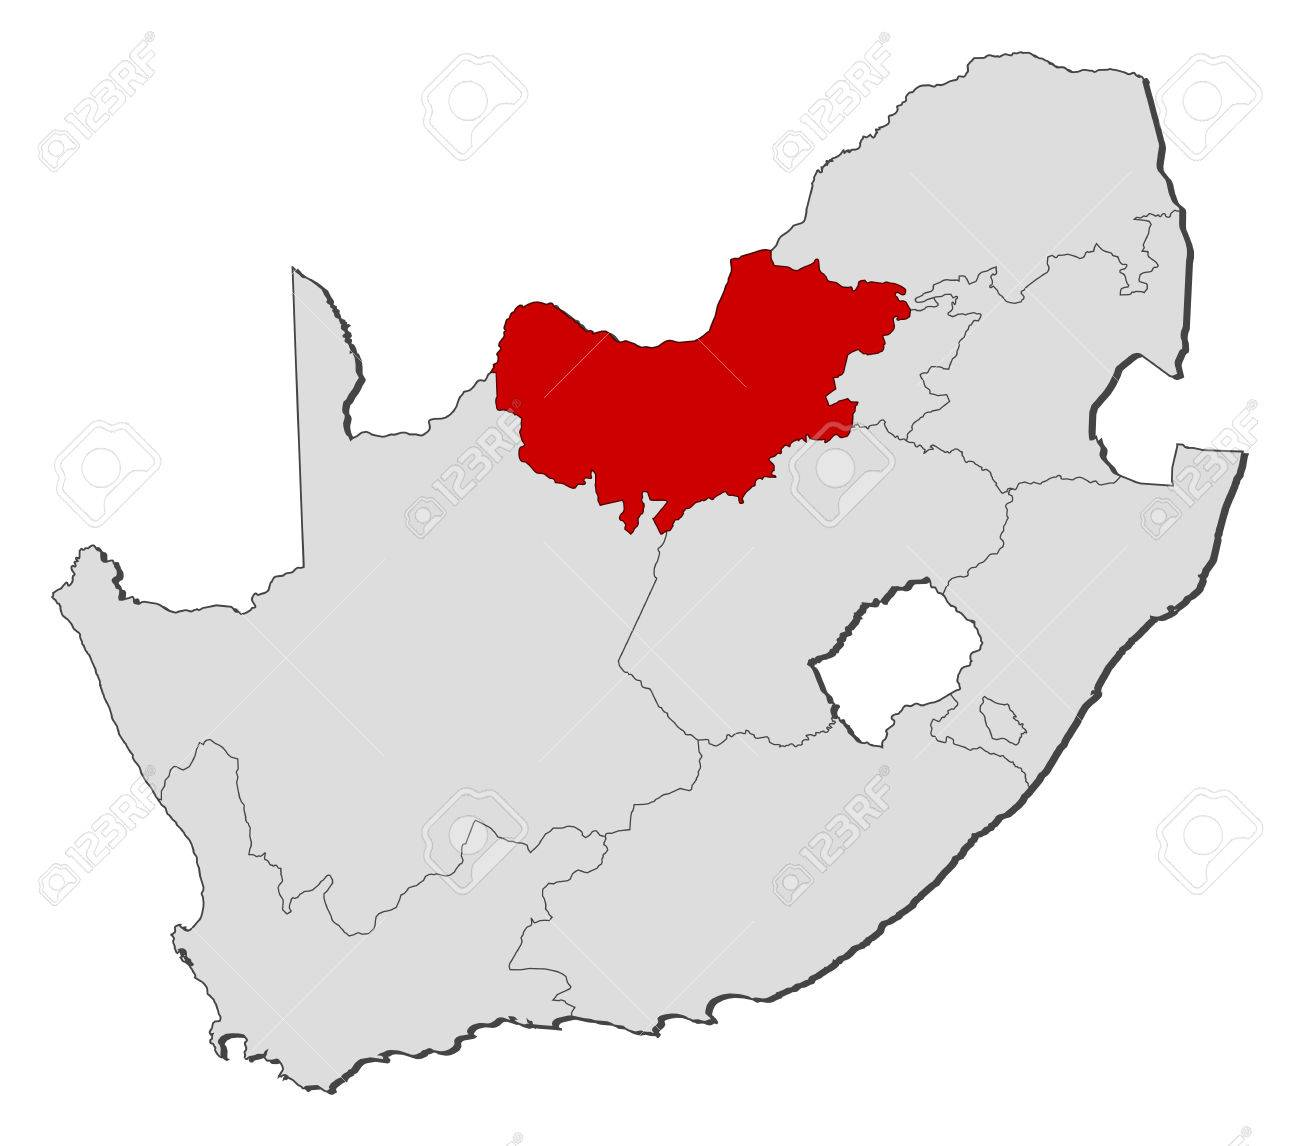 South Africa North West Map.Map Of South Africa With The Provinces North West Is Highlighted